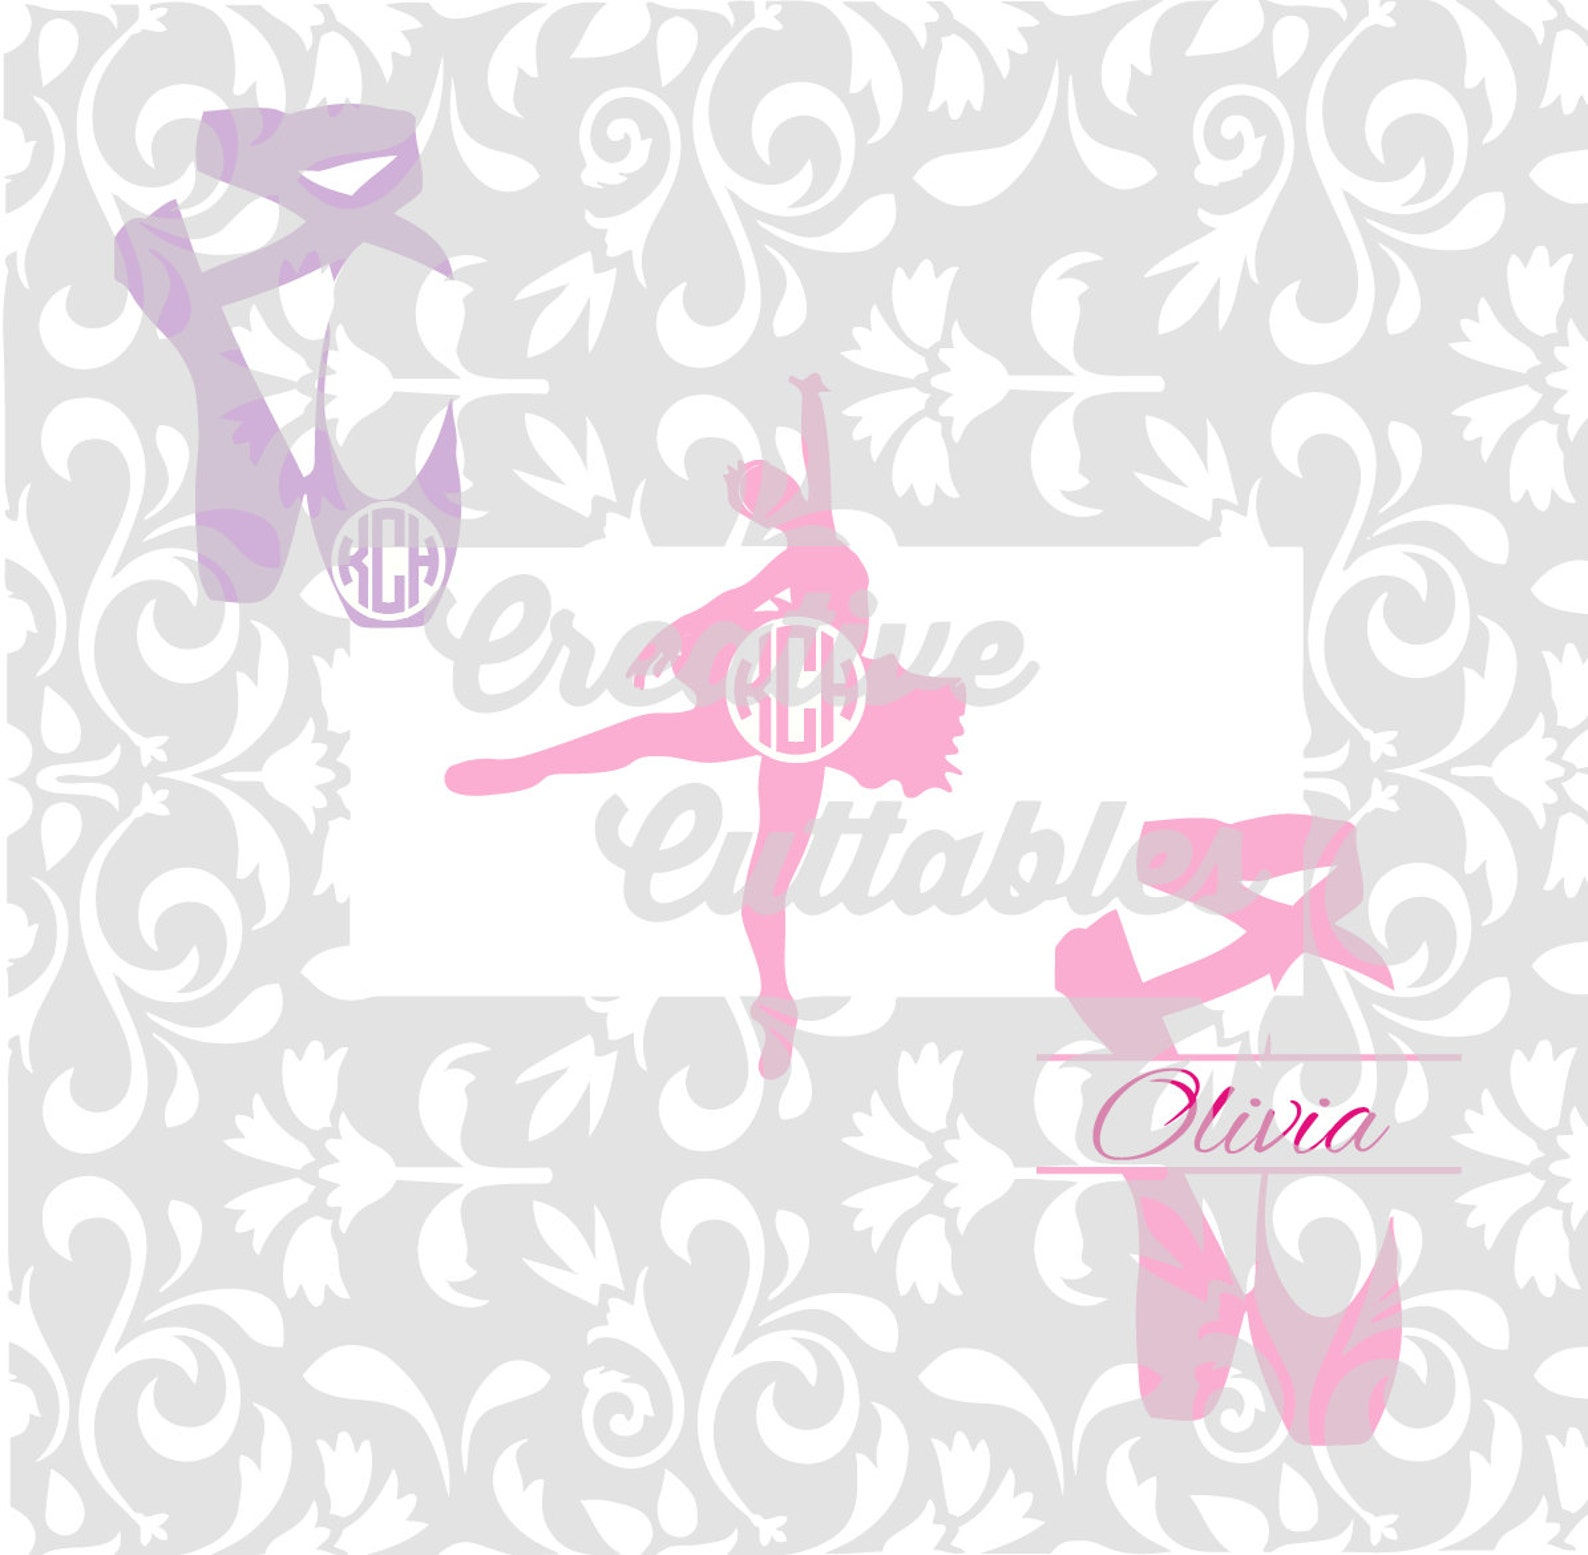 ballerina dancer ballet svg shoes for silhouette or other craft cutters (.svg/.dxf/.eps)